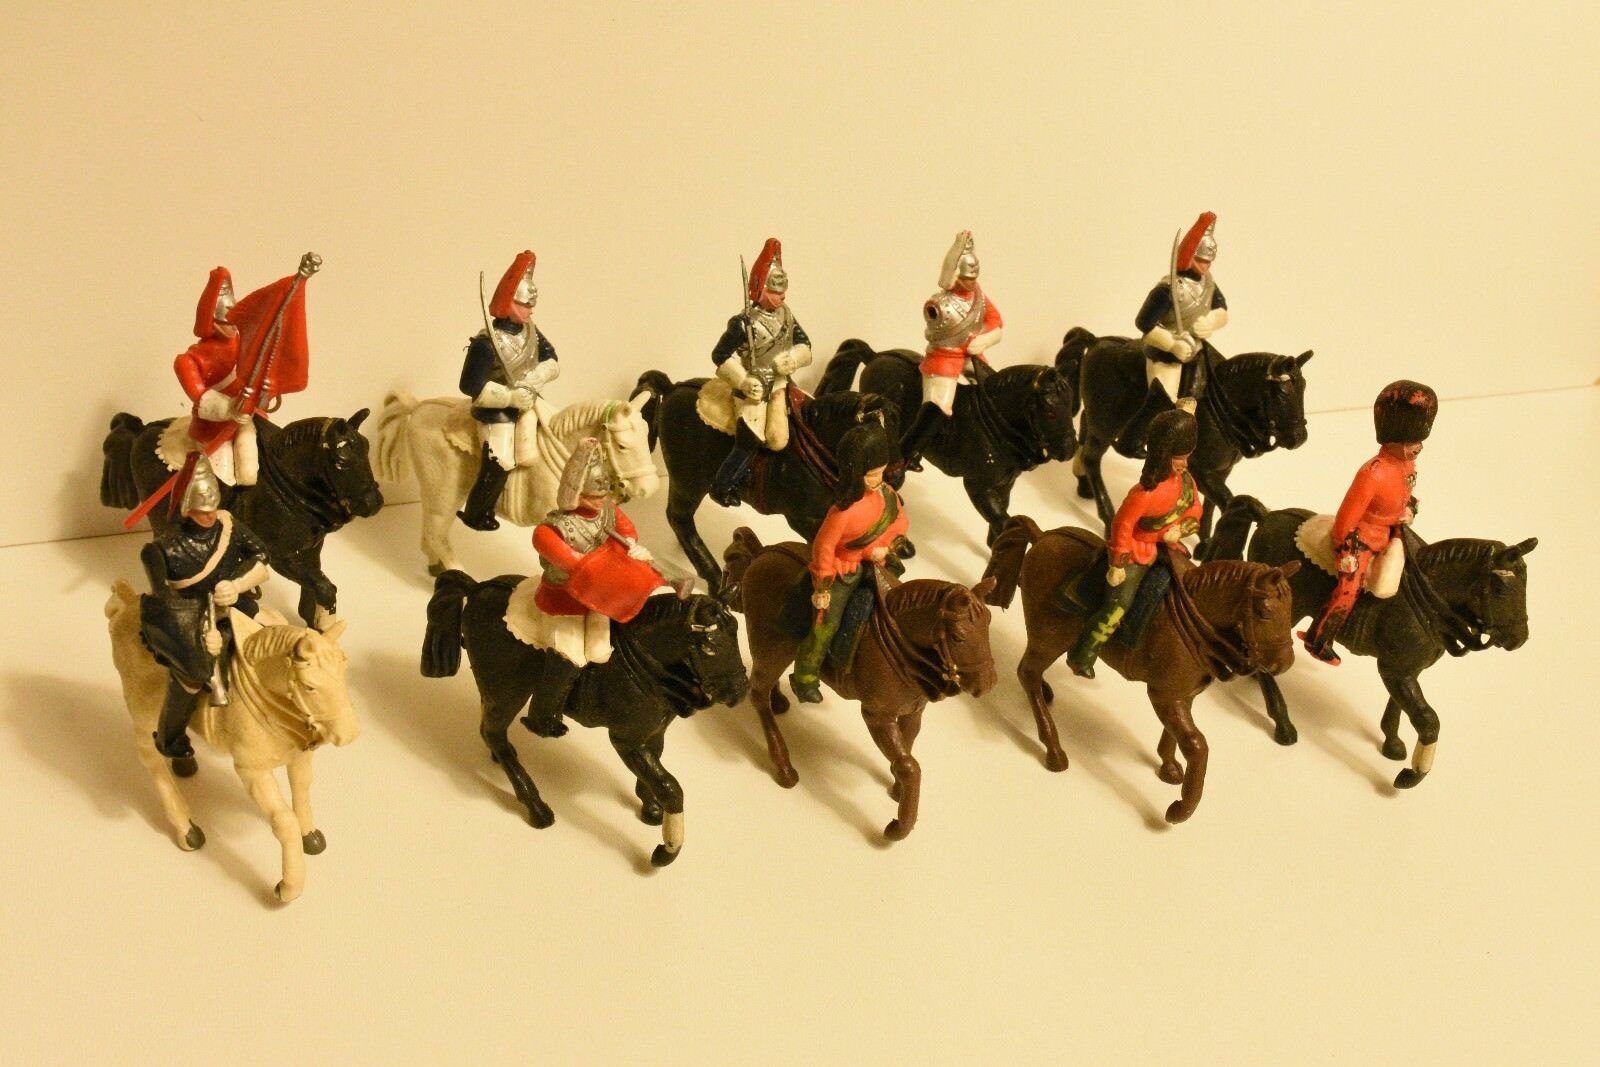 Vintage Britains Royal Guards Coldstream Lifeguards Plastic Toy Soldiers 1 32